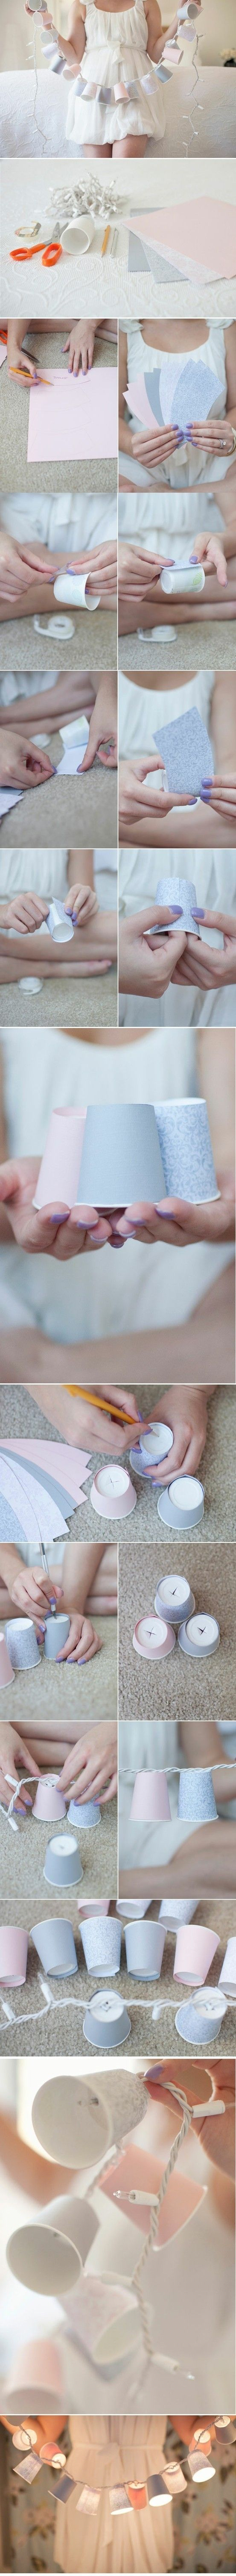 Cover Dixie cups with fancy paper to make small shades for string lights.